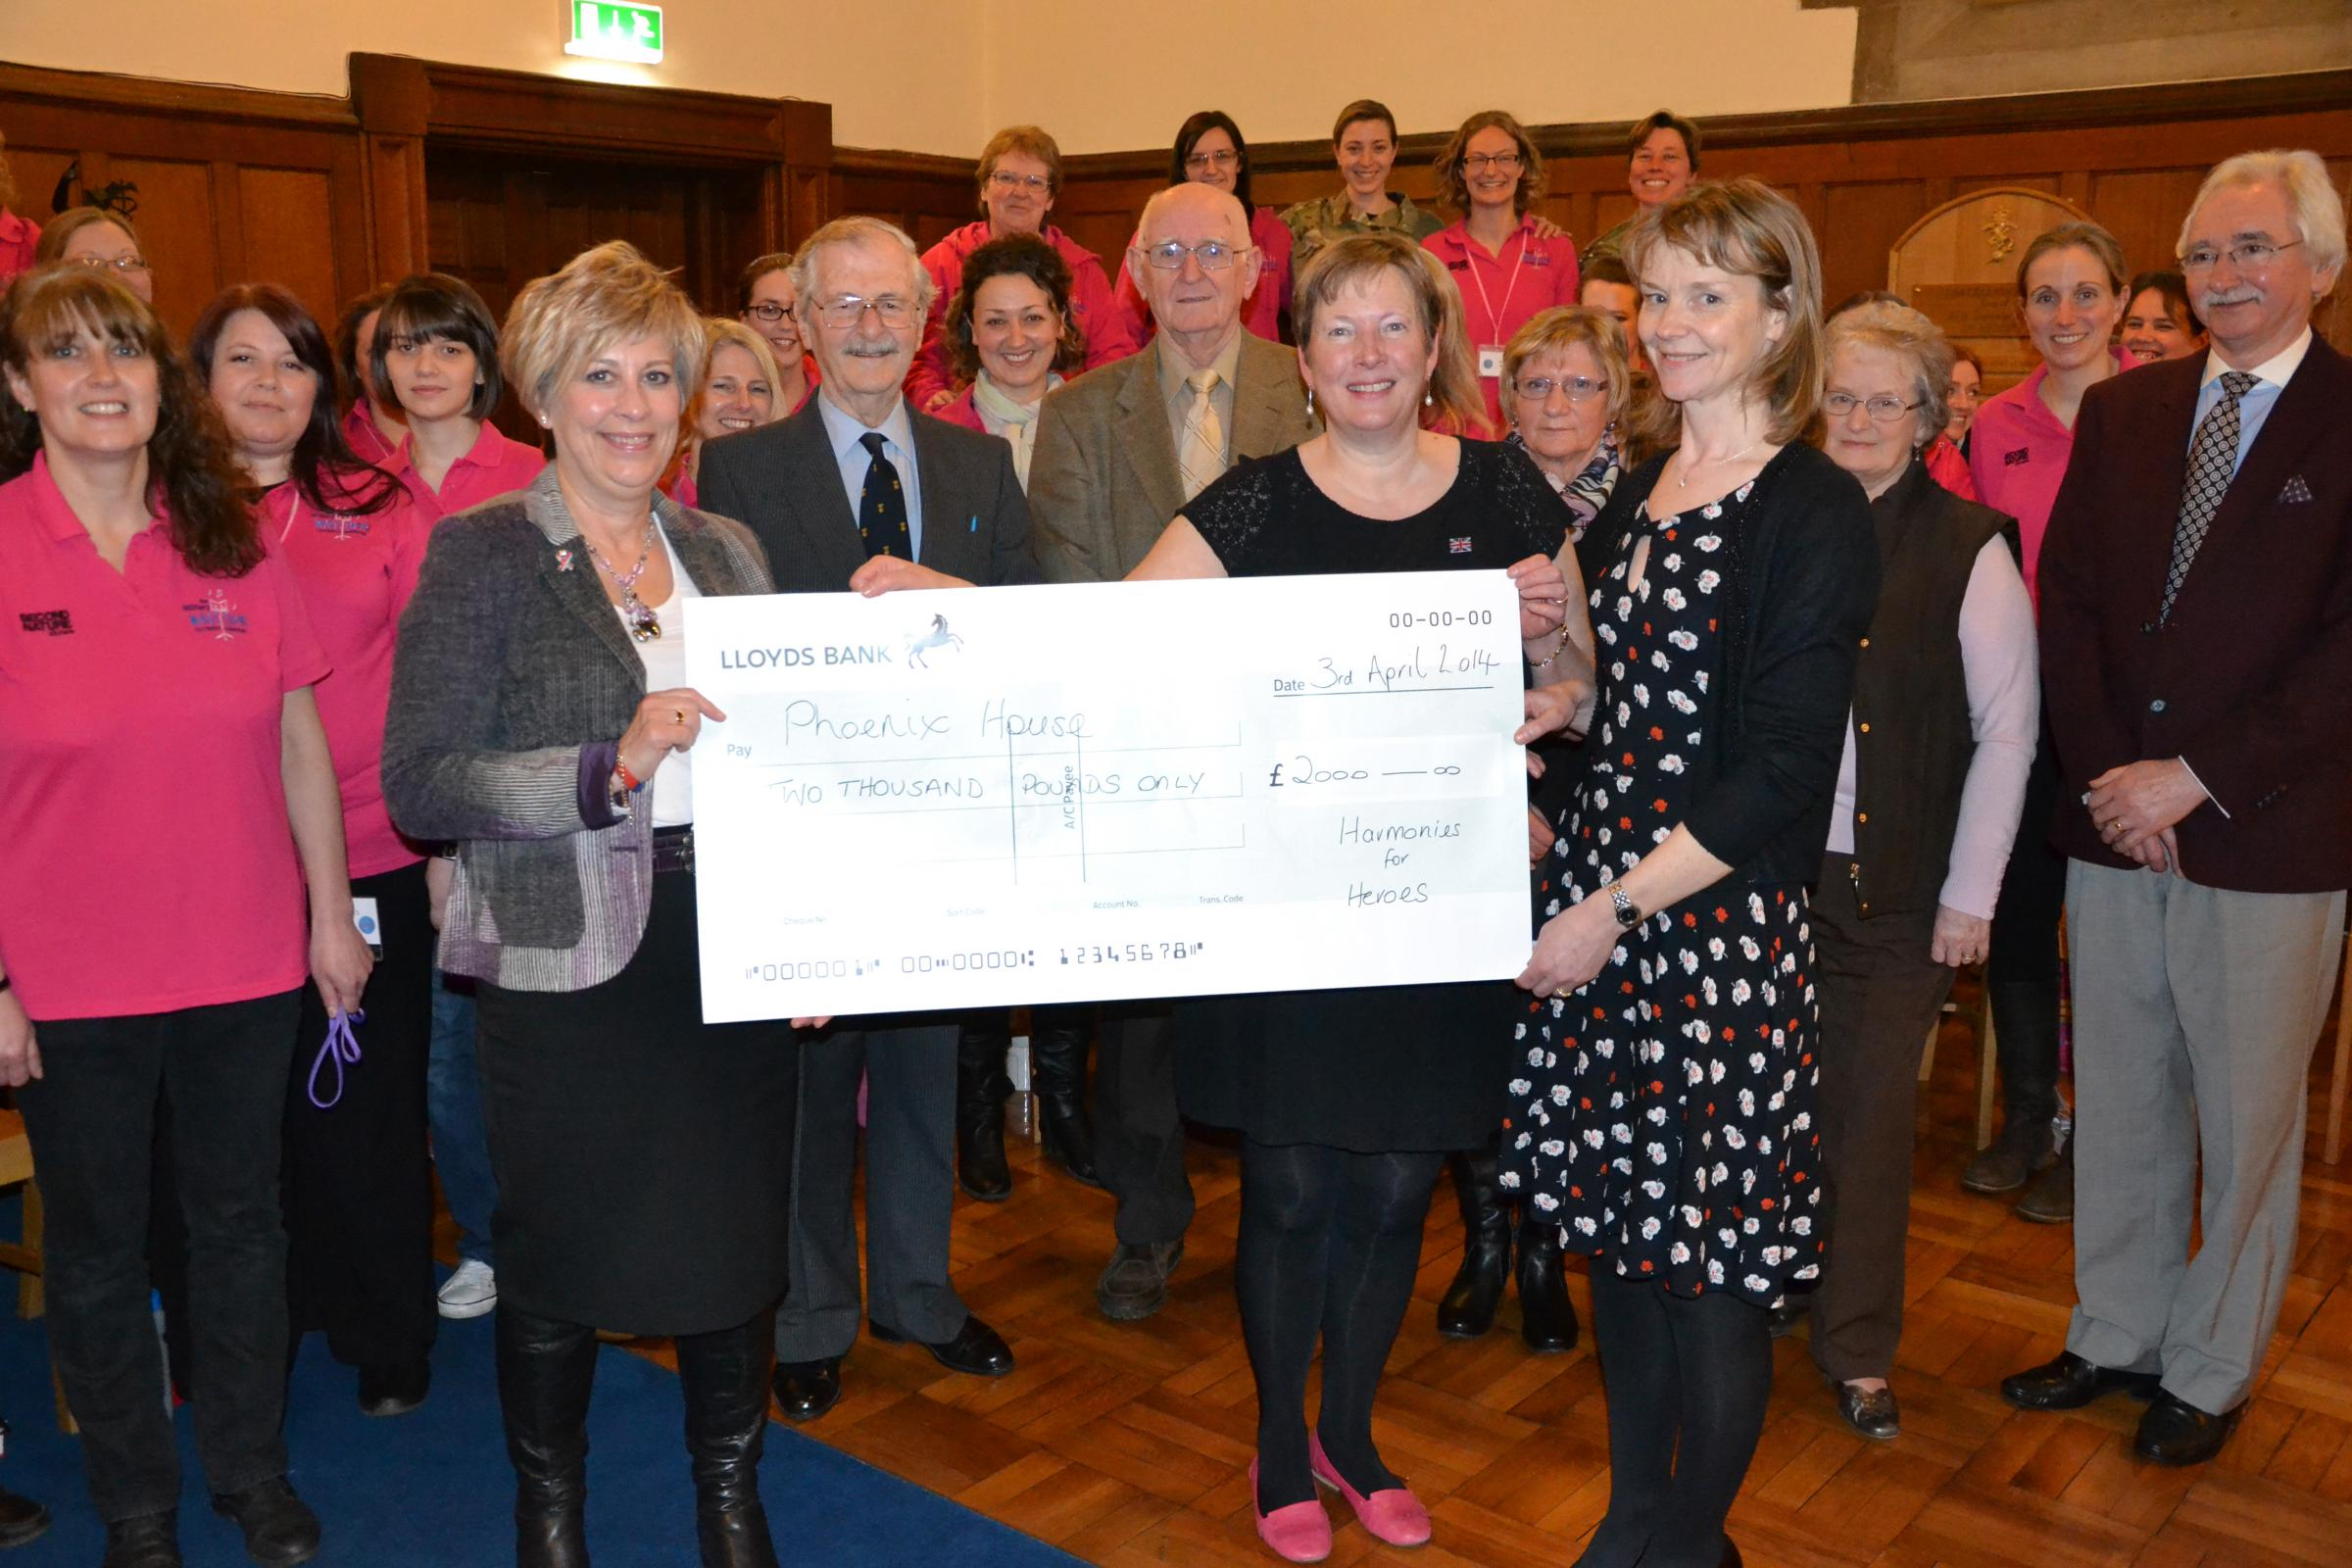 Carol Gedye and Jill Lundberg presenting the cheque to Jill Grainge of Help For Heroes with members of  the Military WAGS Choir Catterick and Muker and Reeth Band.